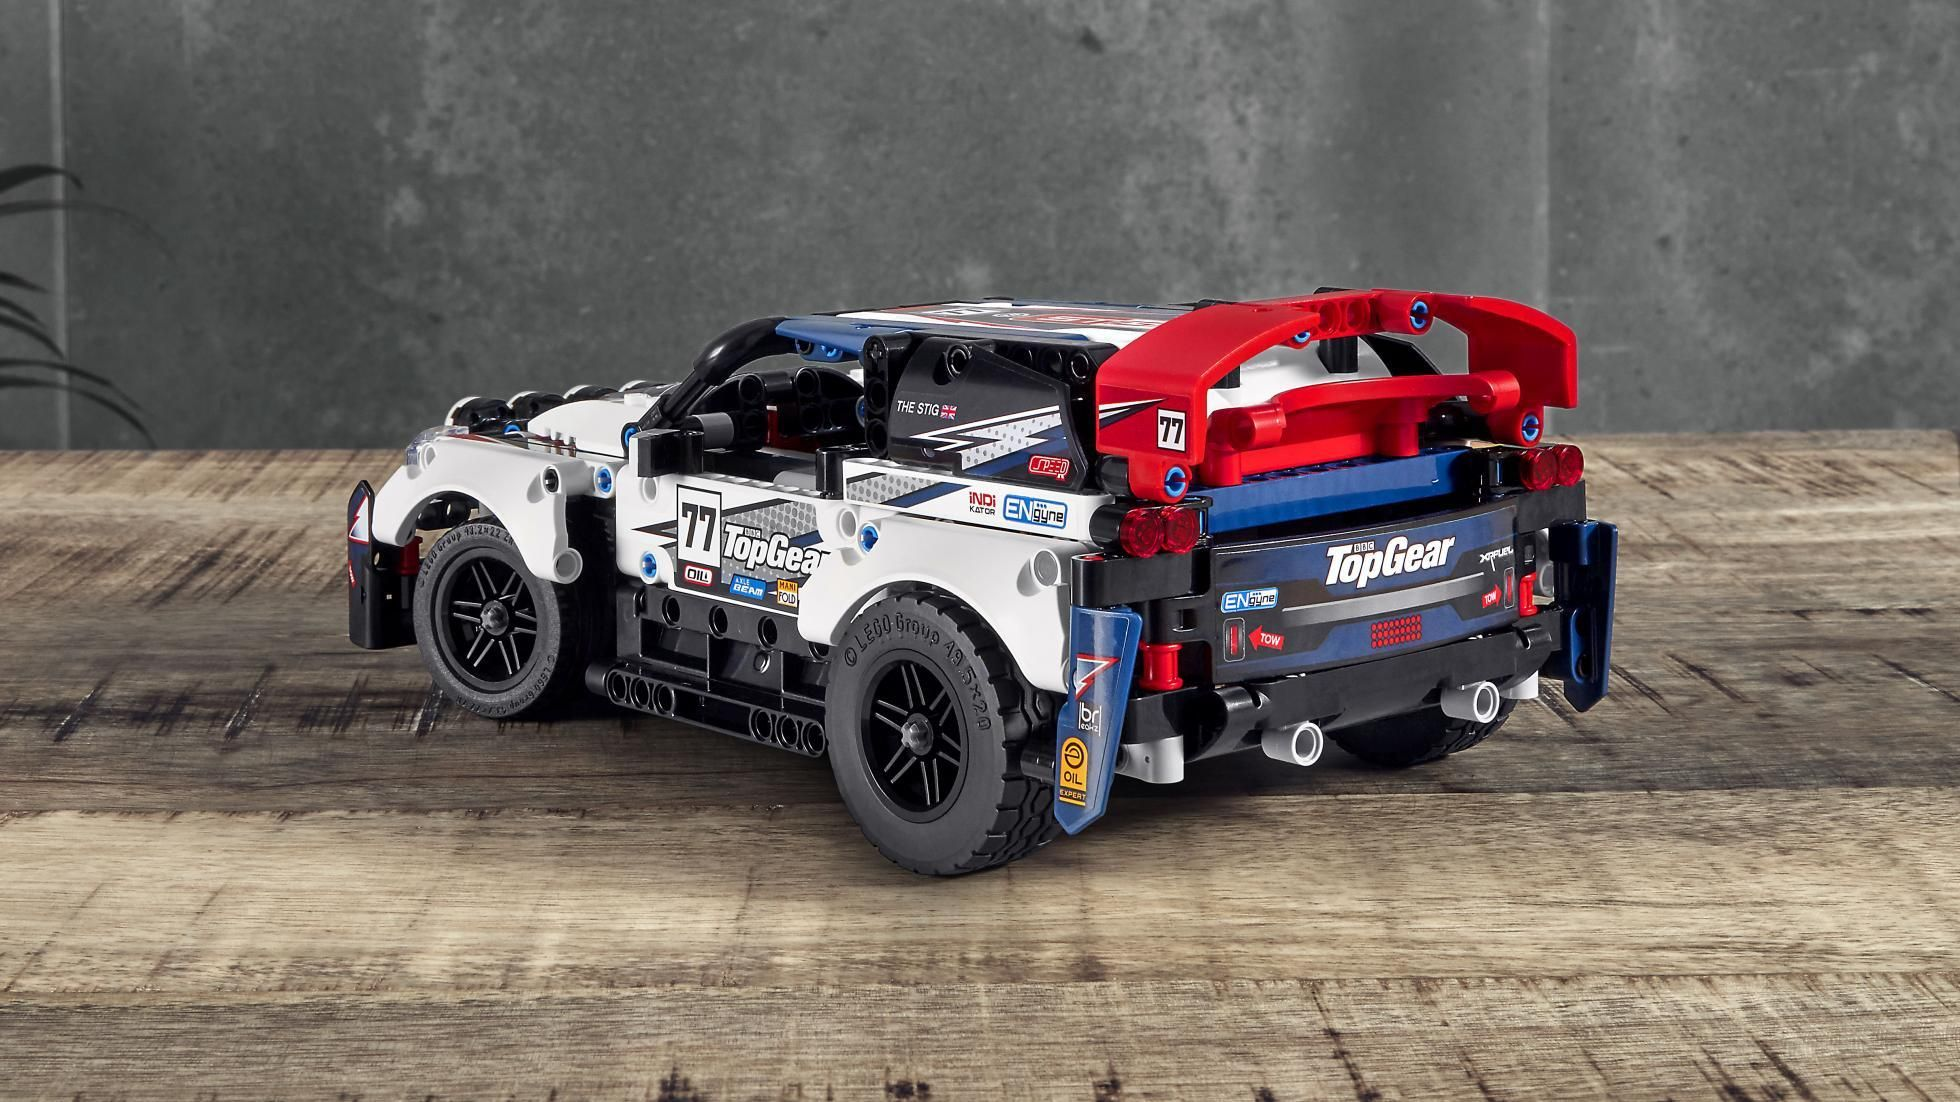 Behold, the remotecontrolled Lego Technic Top Gear Rally